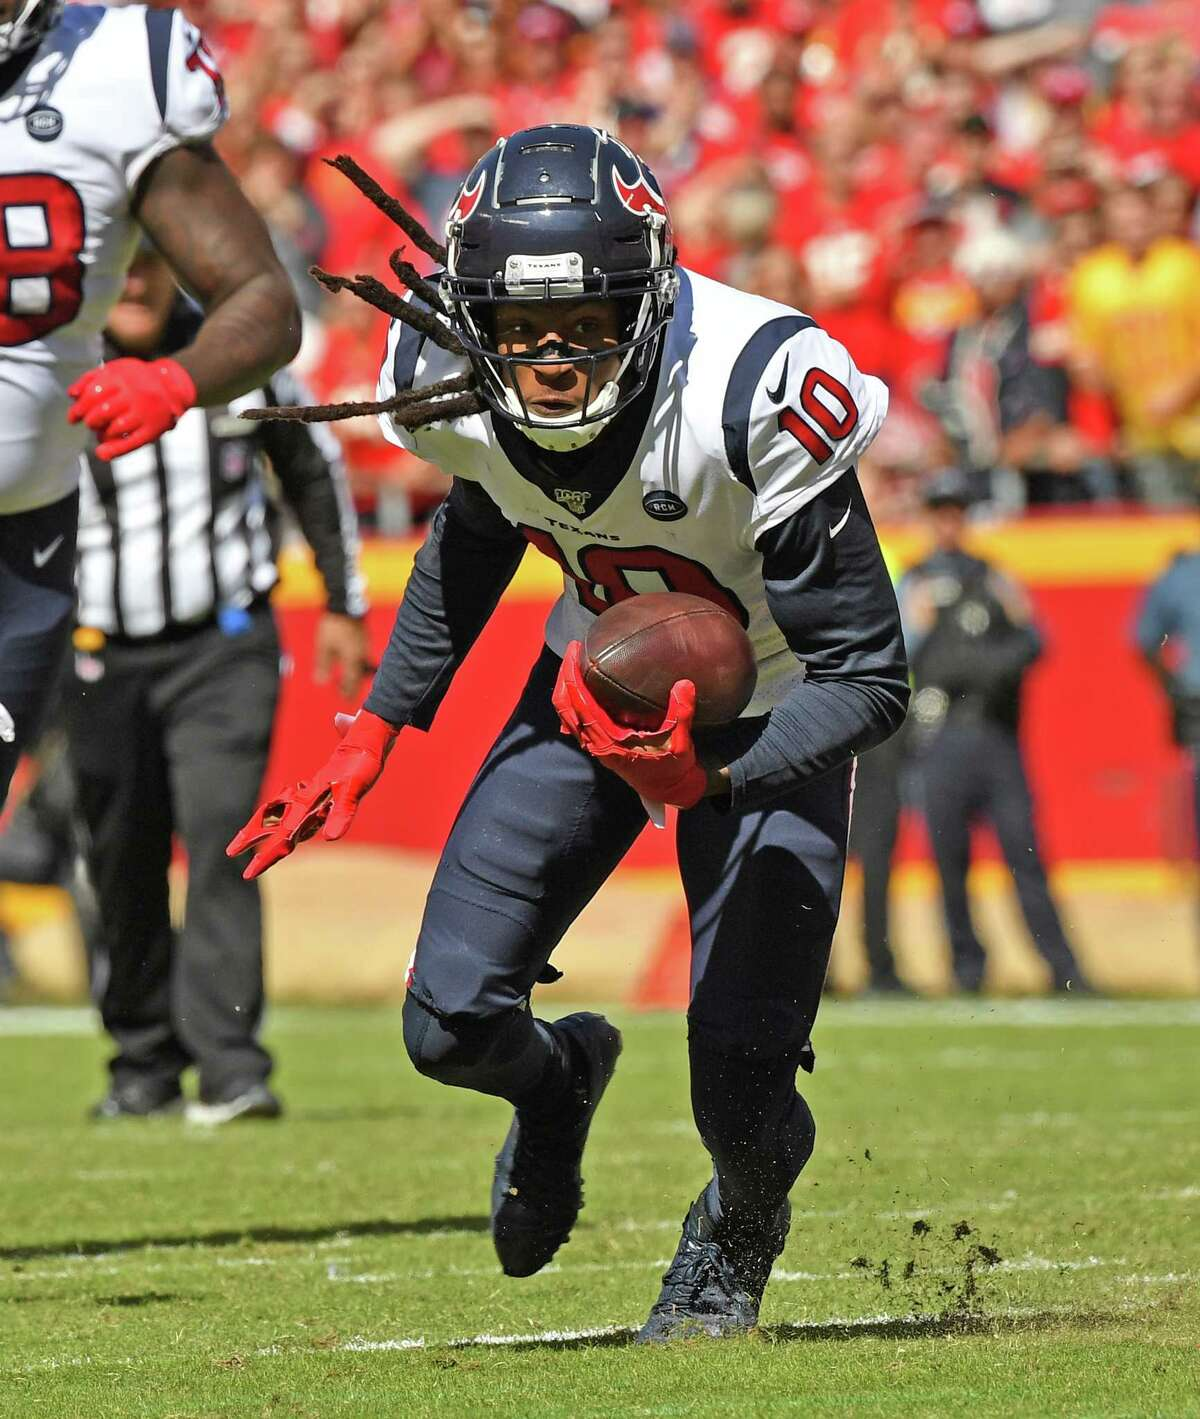 KANSAS CITY, MO - OCTOBER 13: Wide receiver DeAndre Hopkins #10 of the Houston Texans turns up field after catching a pass against the Kansas City Chiefs during the first half at Arrowhead Stadium on October 13, 2019 in Kansas City, Missouri. (Photo by Peter Aiken/Getty Images)